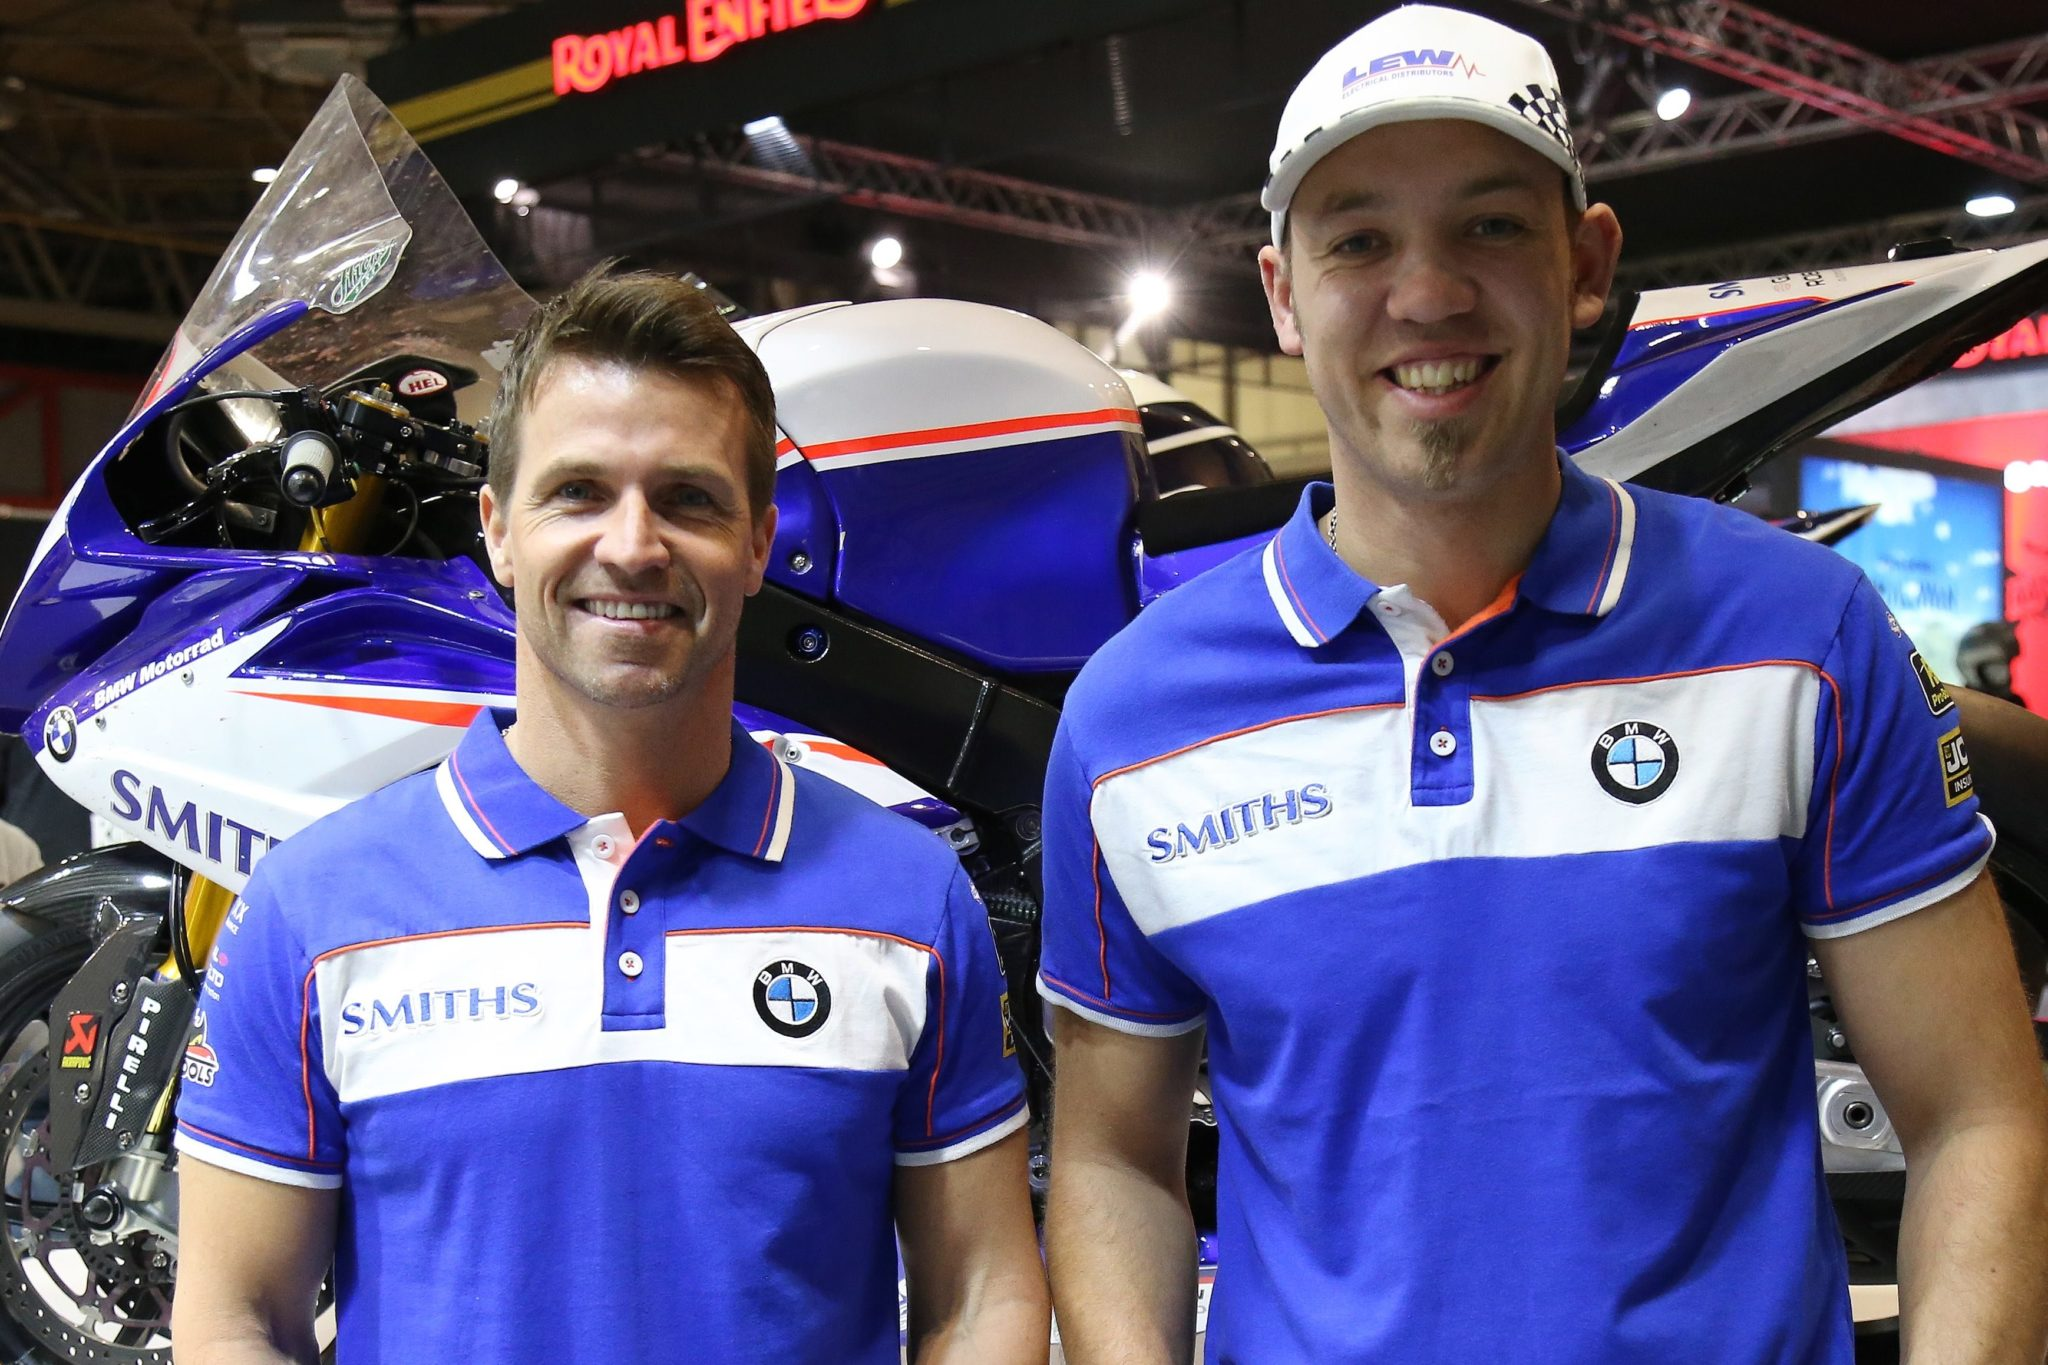 James Ellison and Peter Hickman will represent Smiths Racing BMW credit Double Red